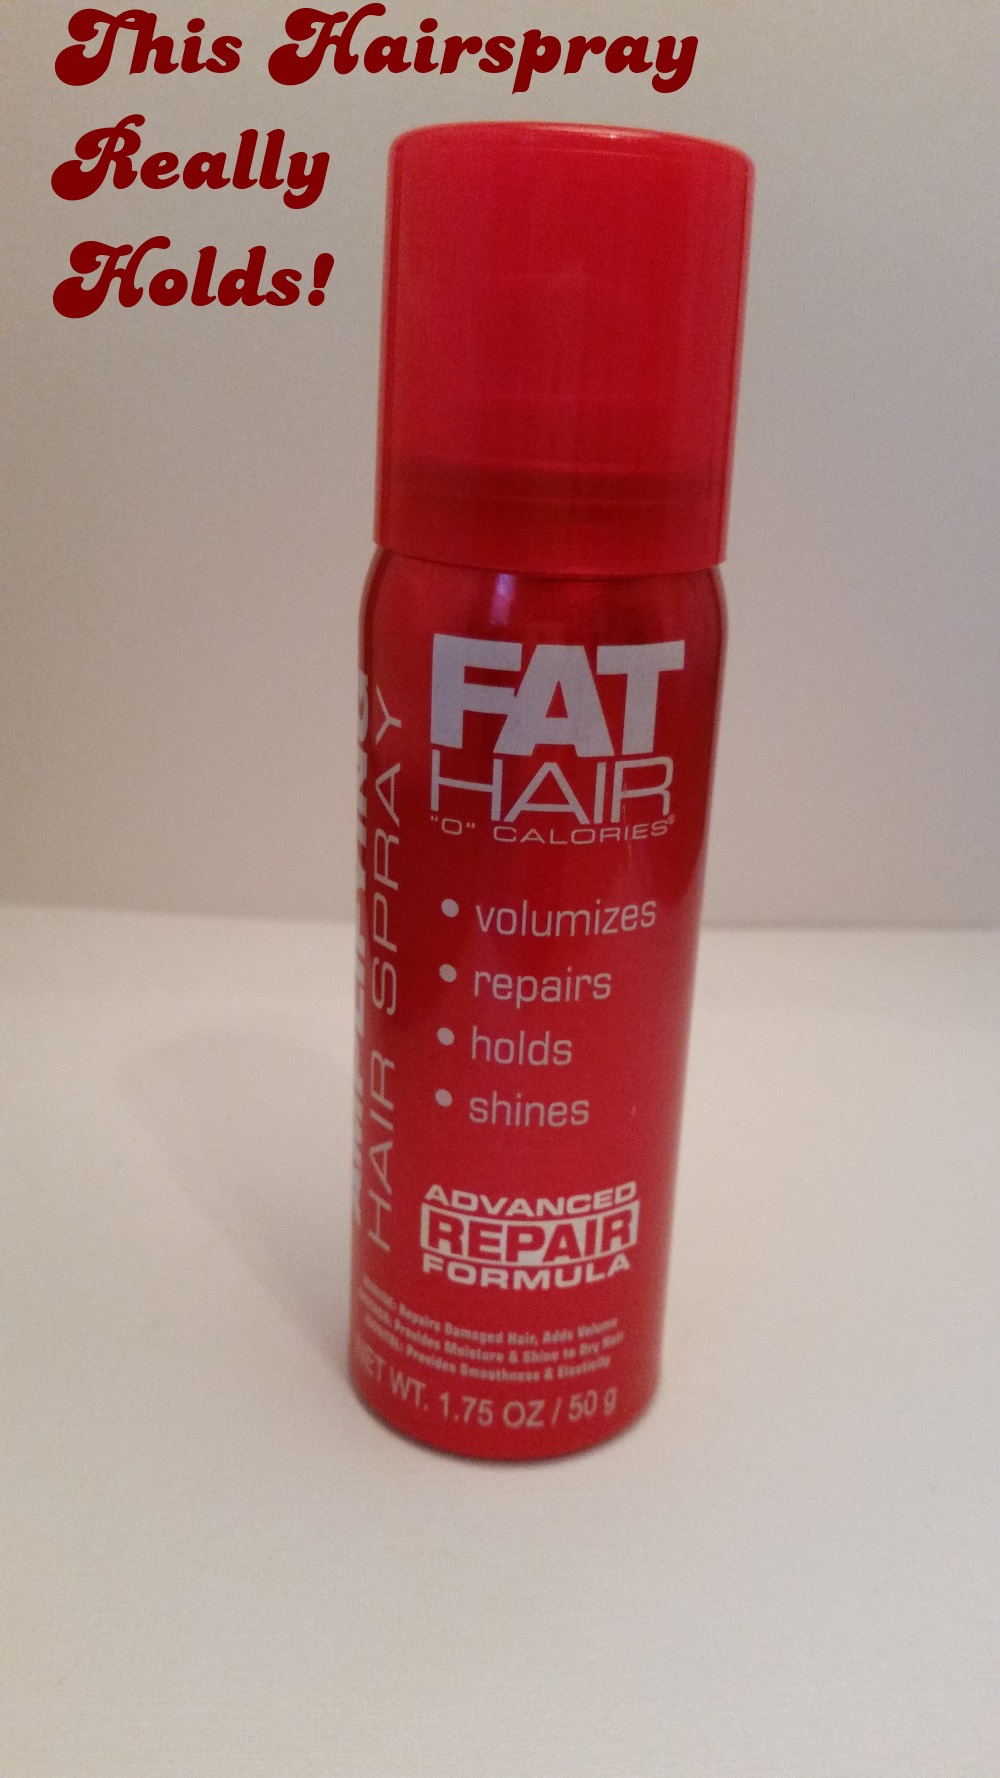 Fat Hair Review 36